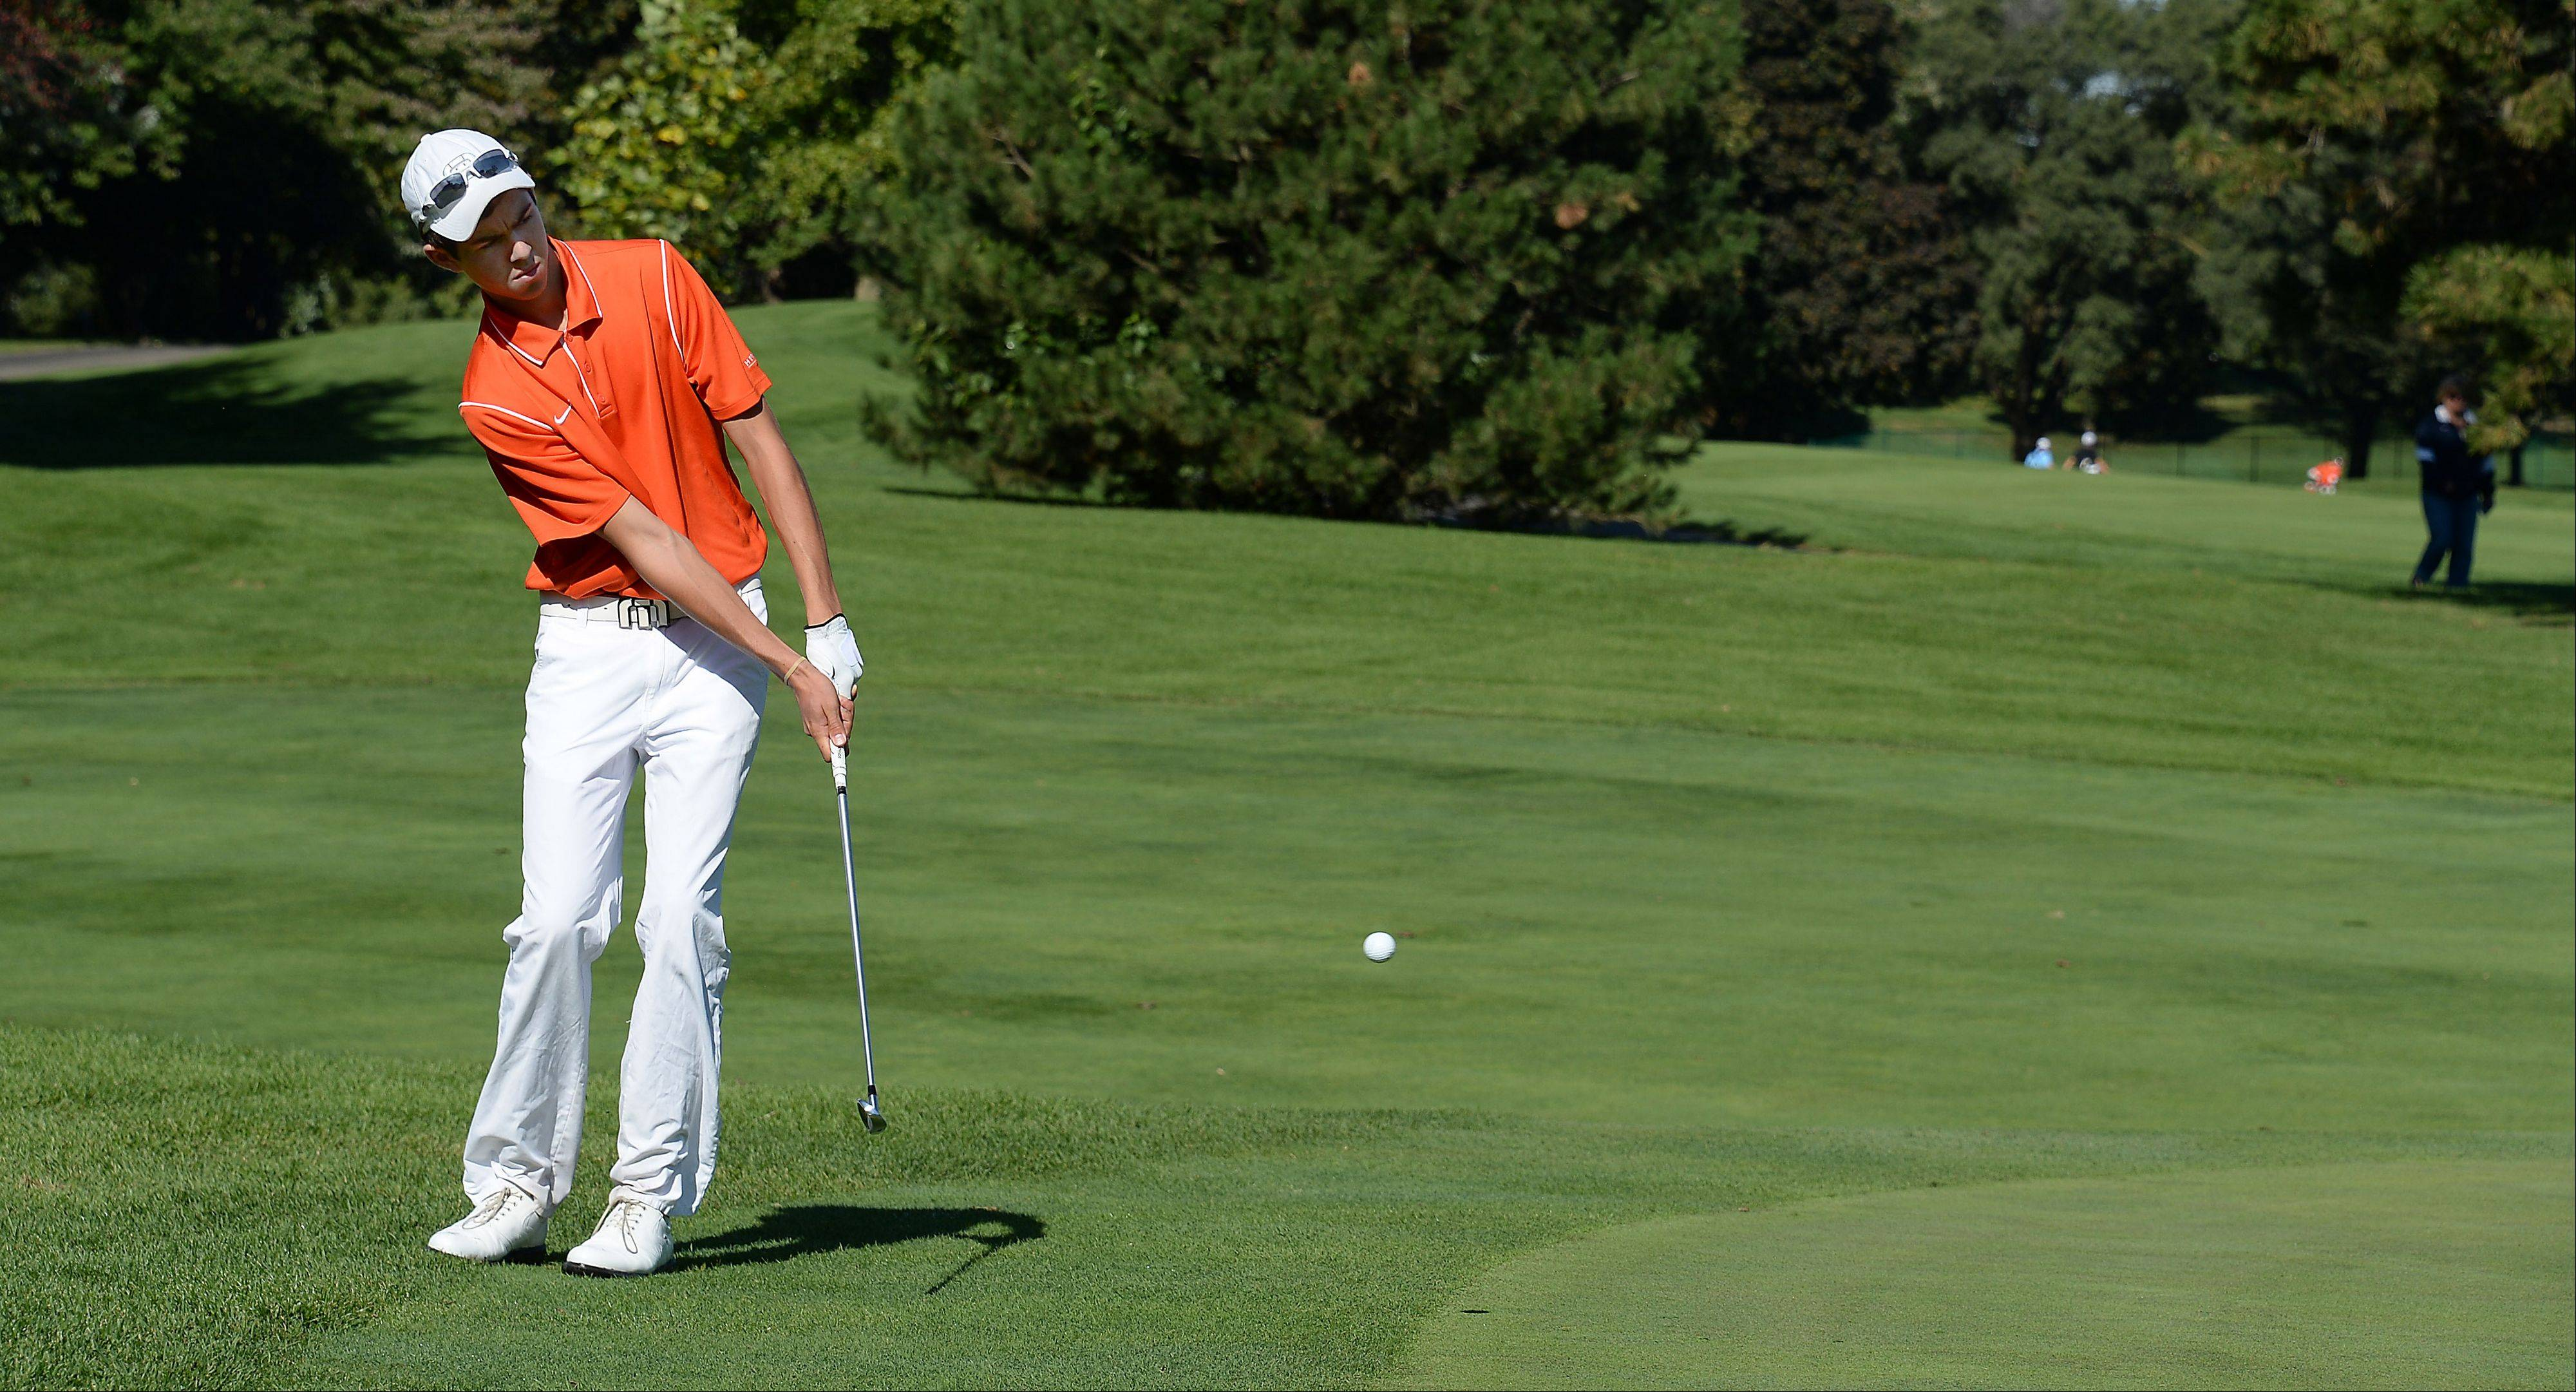 Hersey senior Kenny Mleko, who will play at Loyola next year, chips up during the Mid-Suburban League meet at Schaumburg Golf Club.